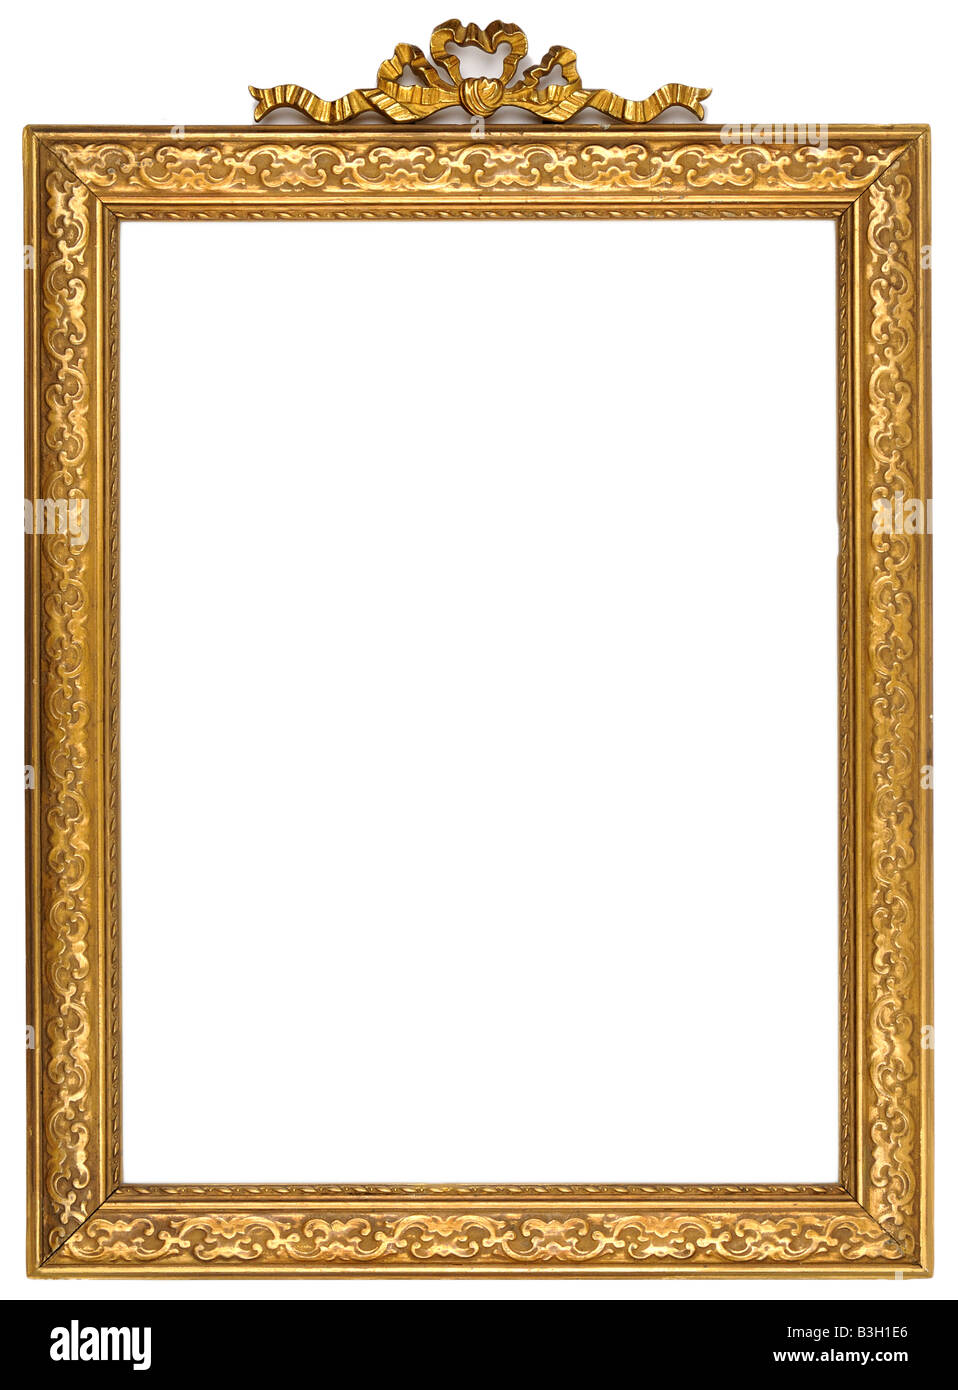 Gold square antique picture frame cutout art craft Stock Photo ...